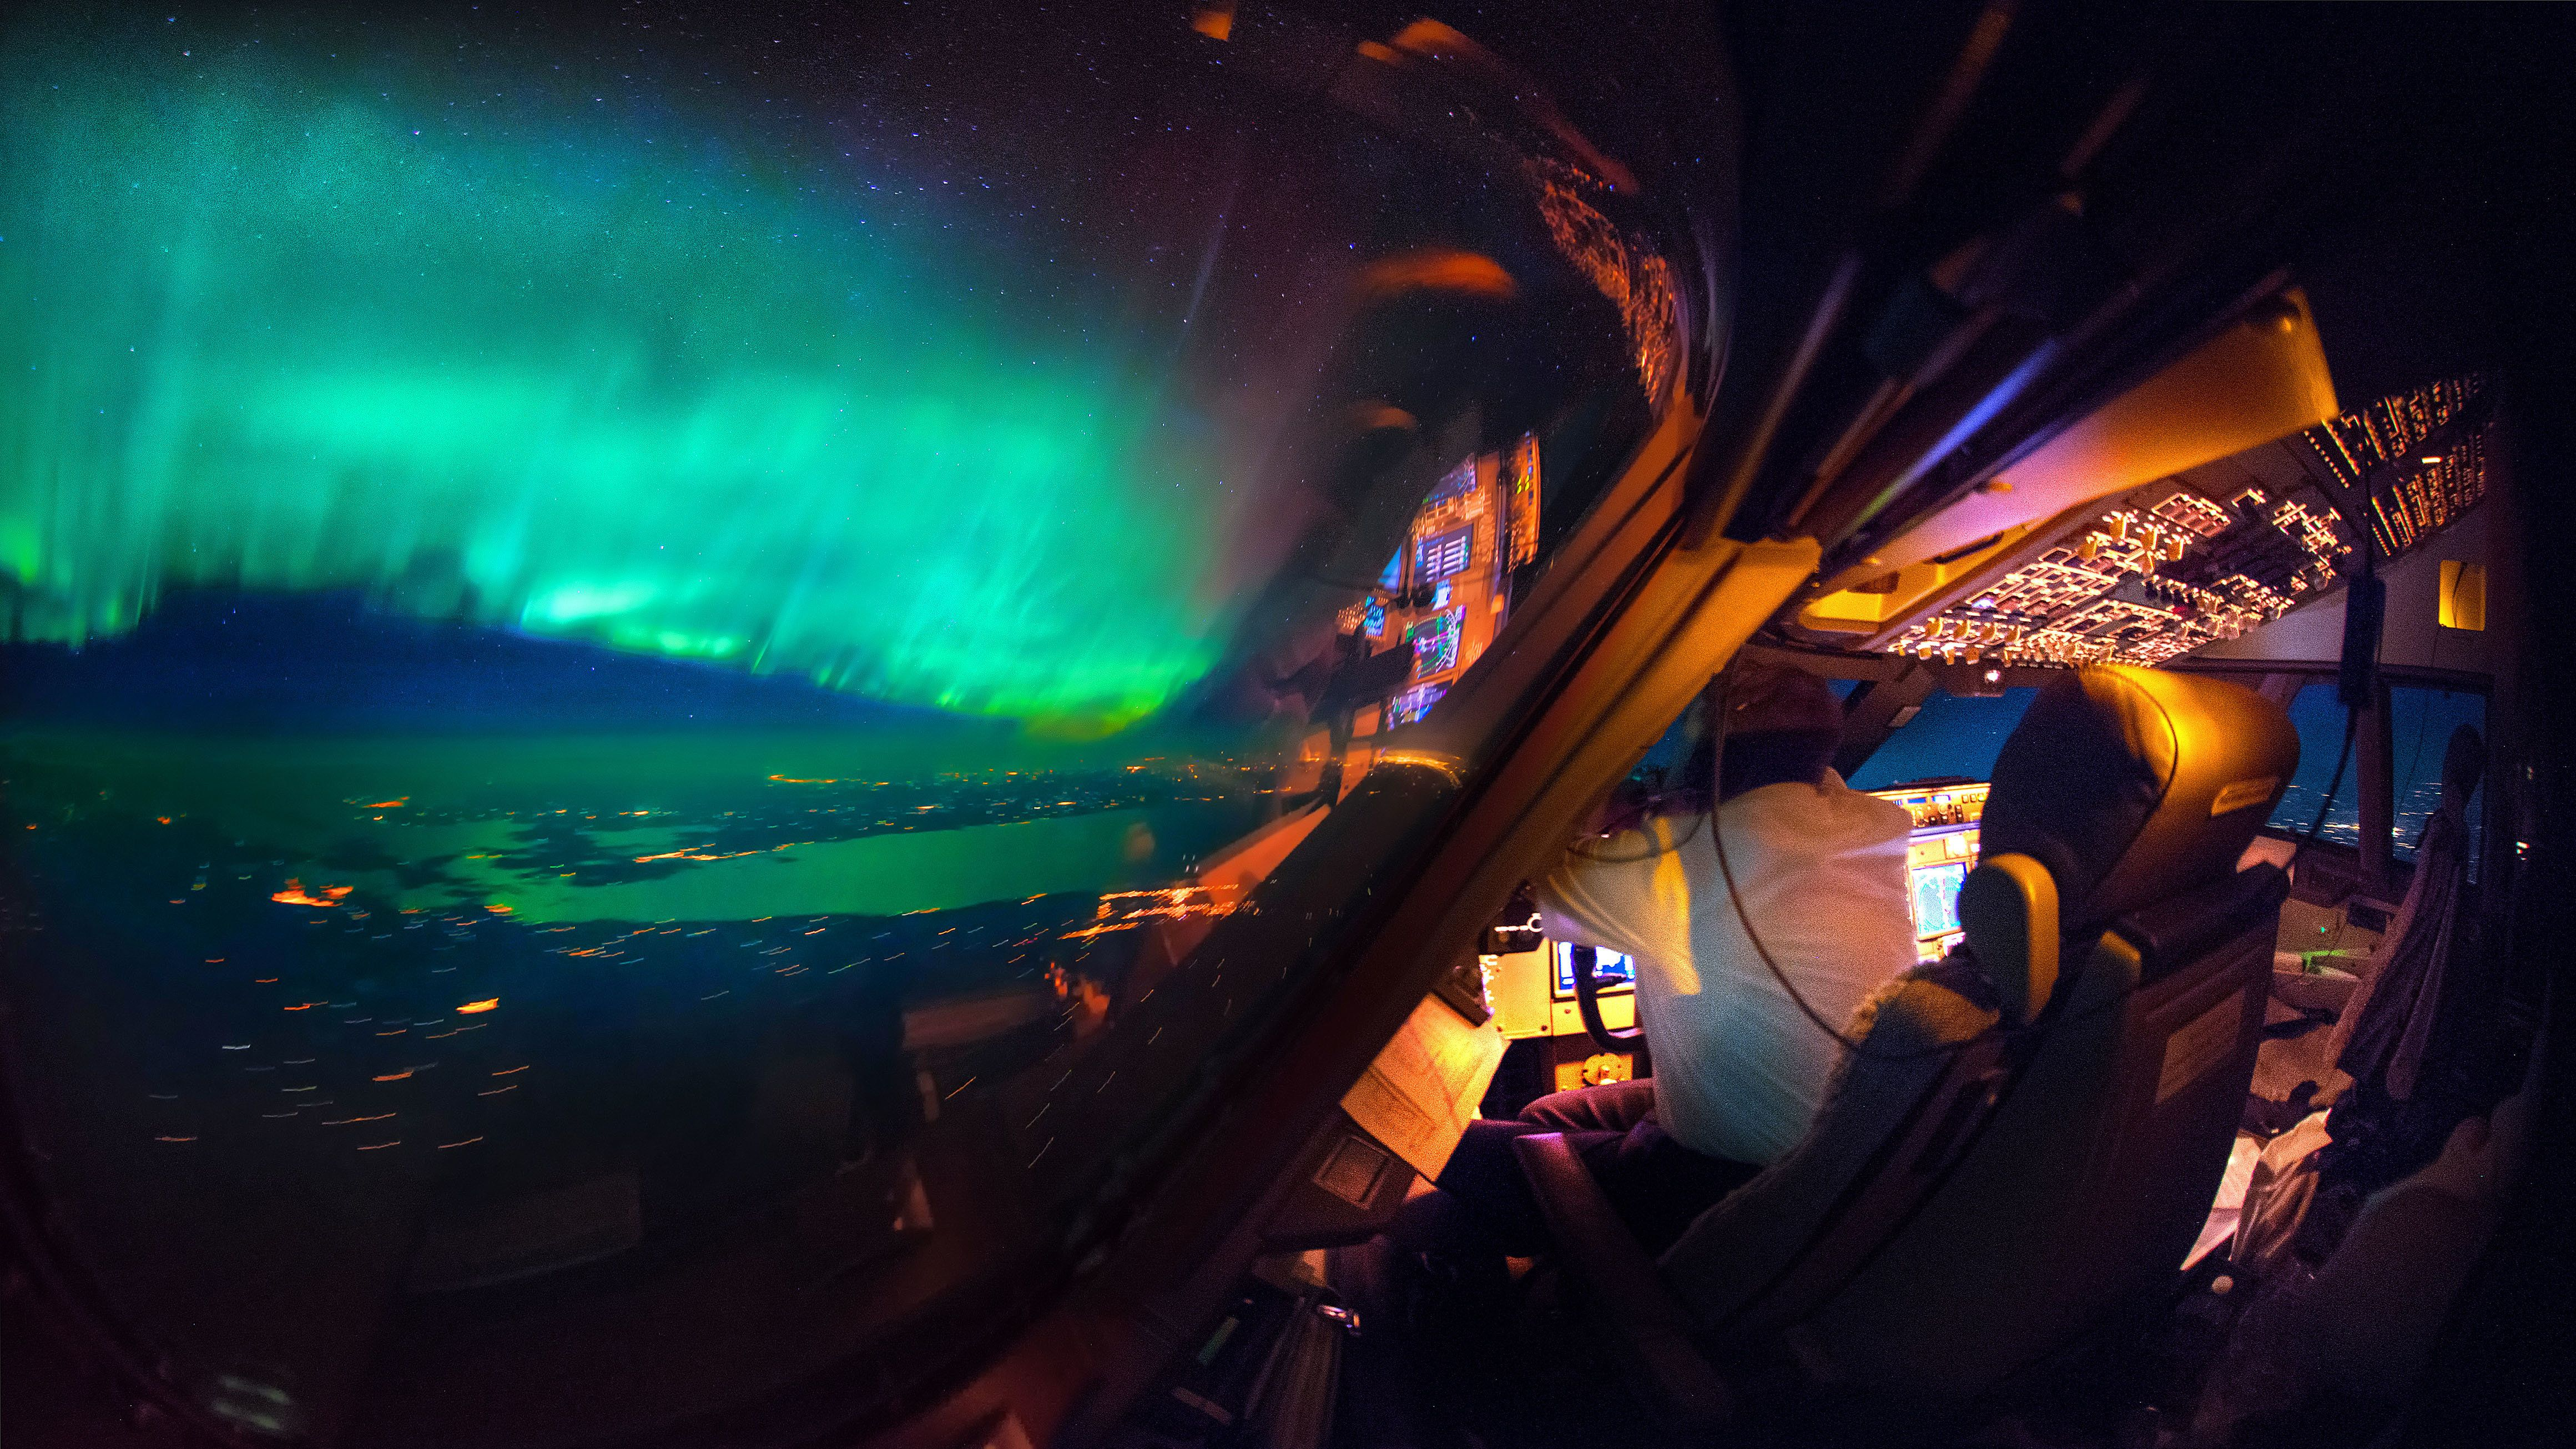 An amazing view of the northern lights from the cockpit.